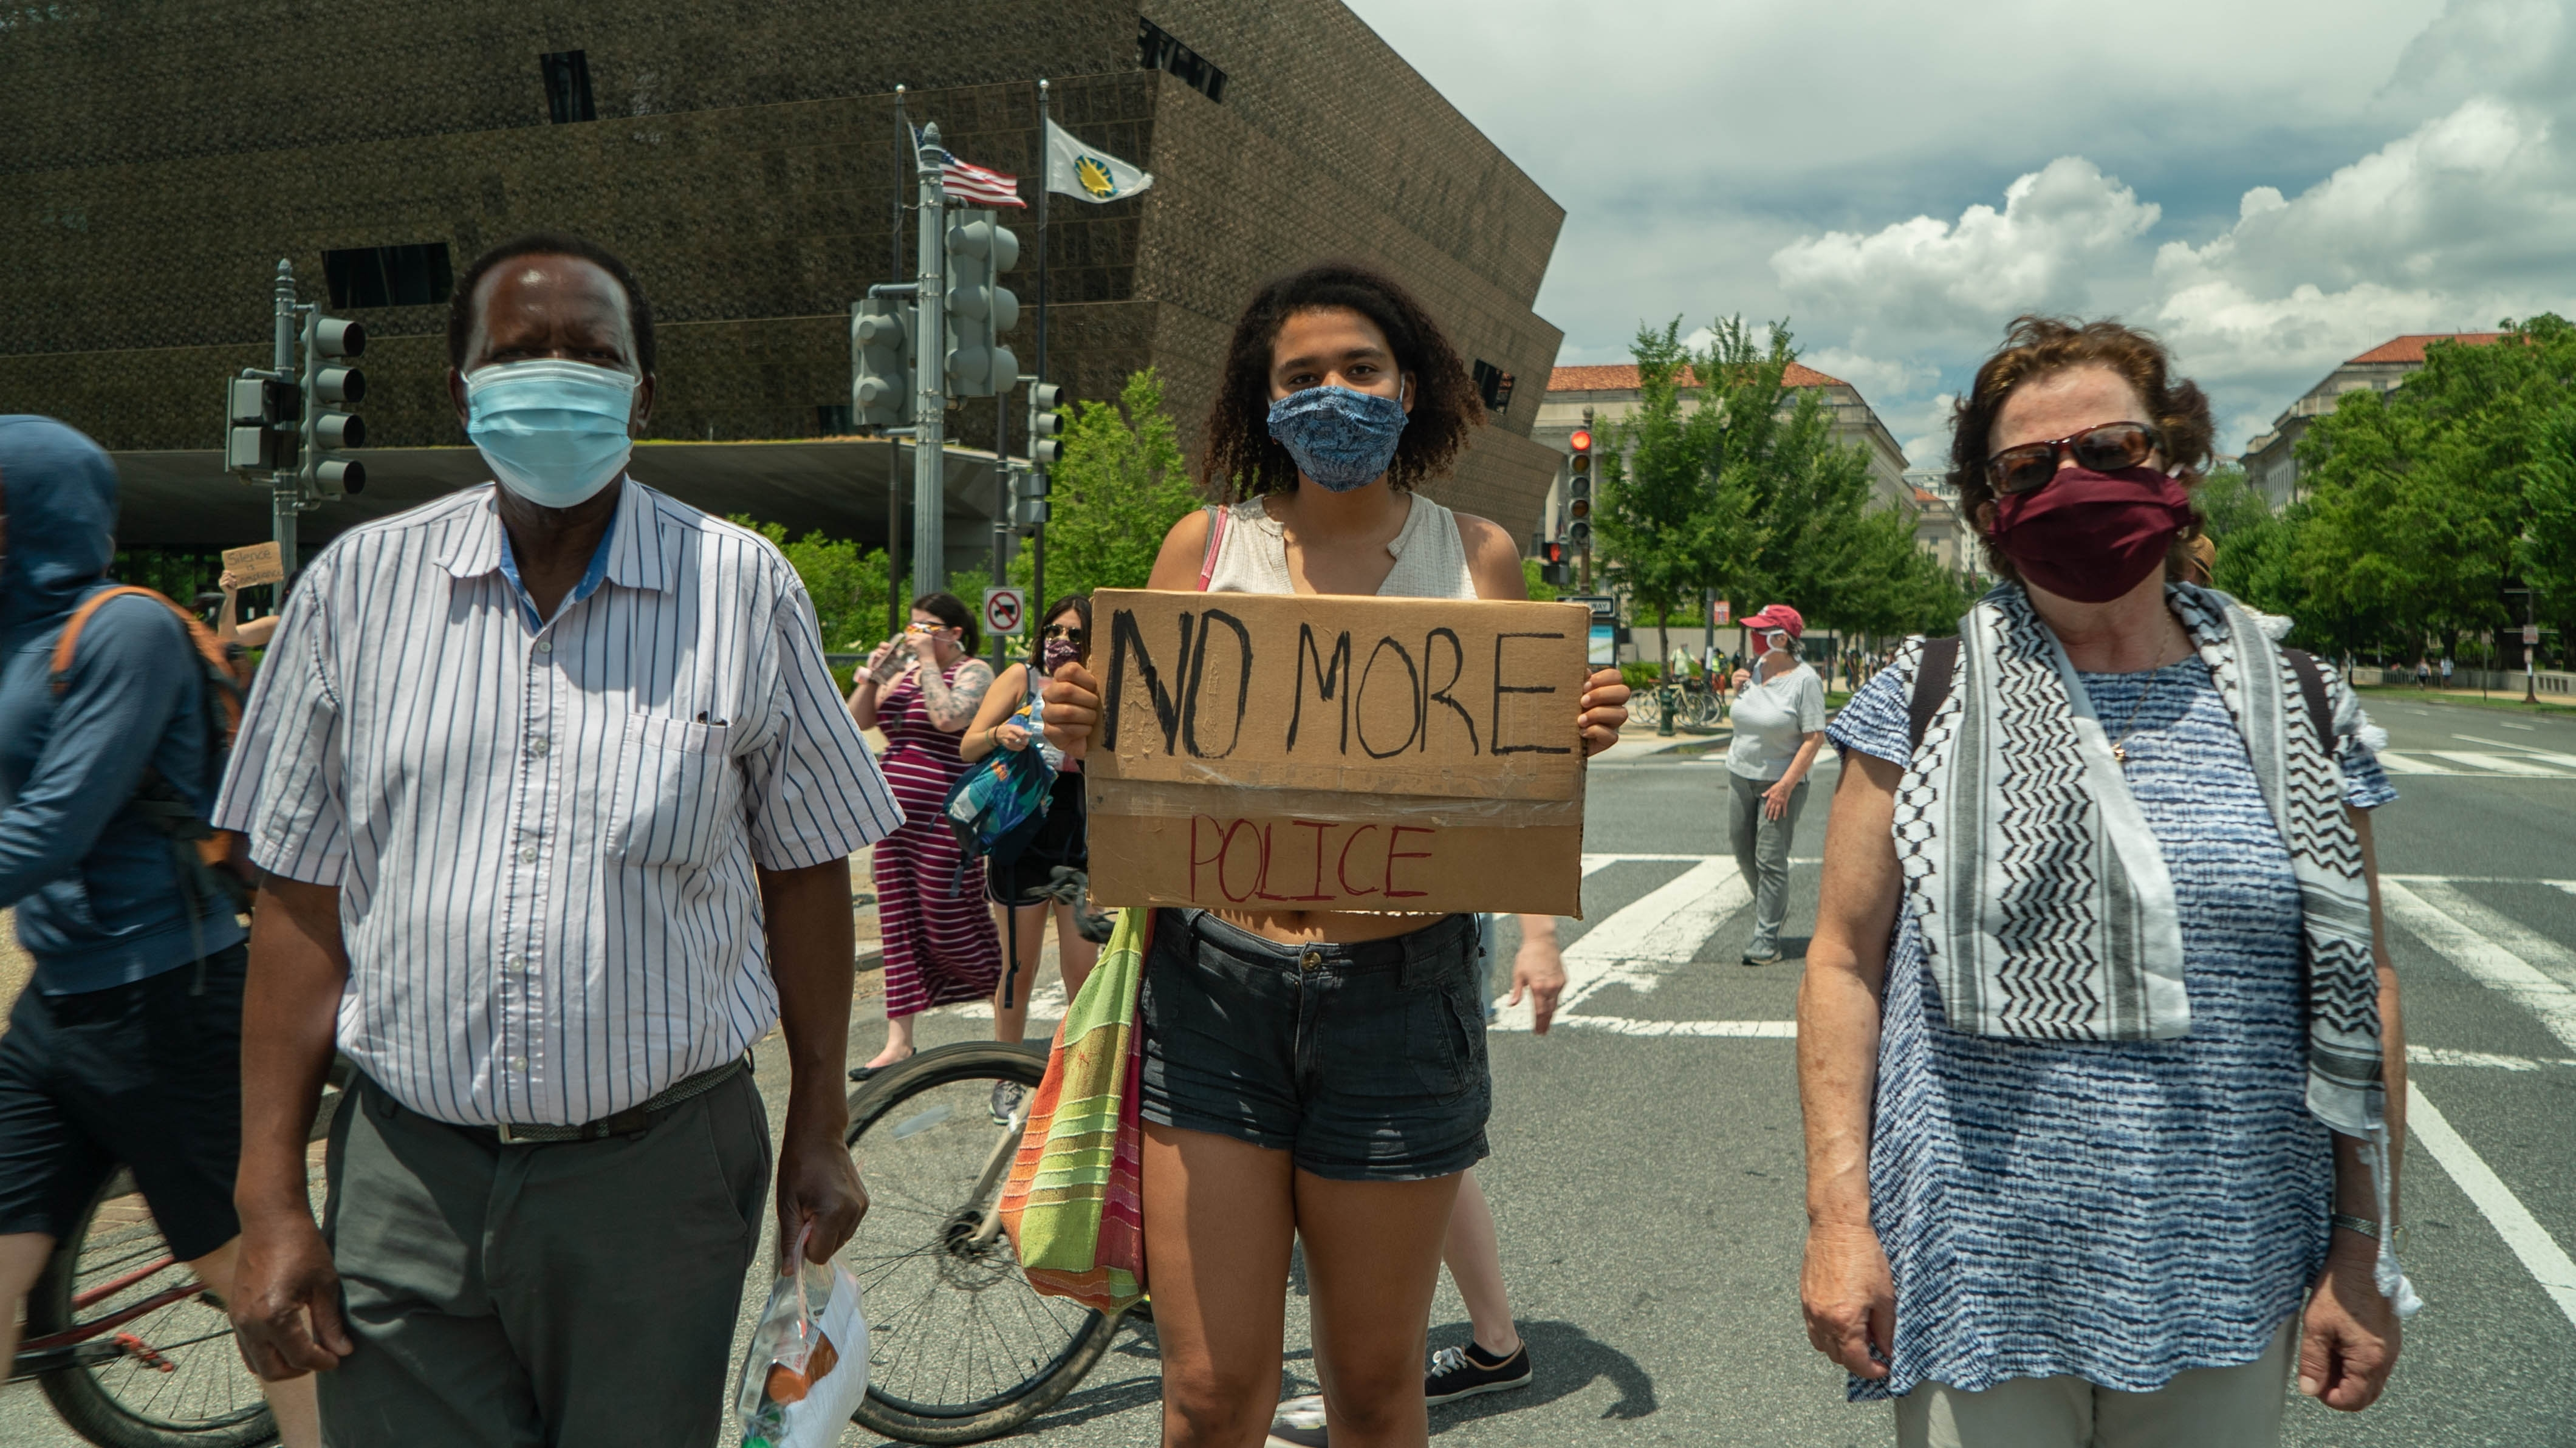 Handel Mlilo, his wife, Nadine Sahyoun and their daughter, Miranda, at the D.C. protest. (Jean-François Bisson/CBC)